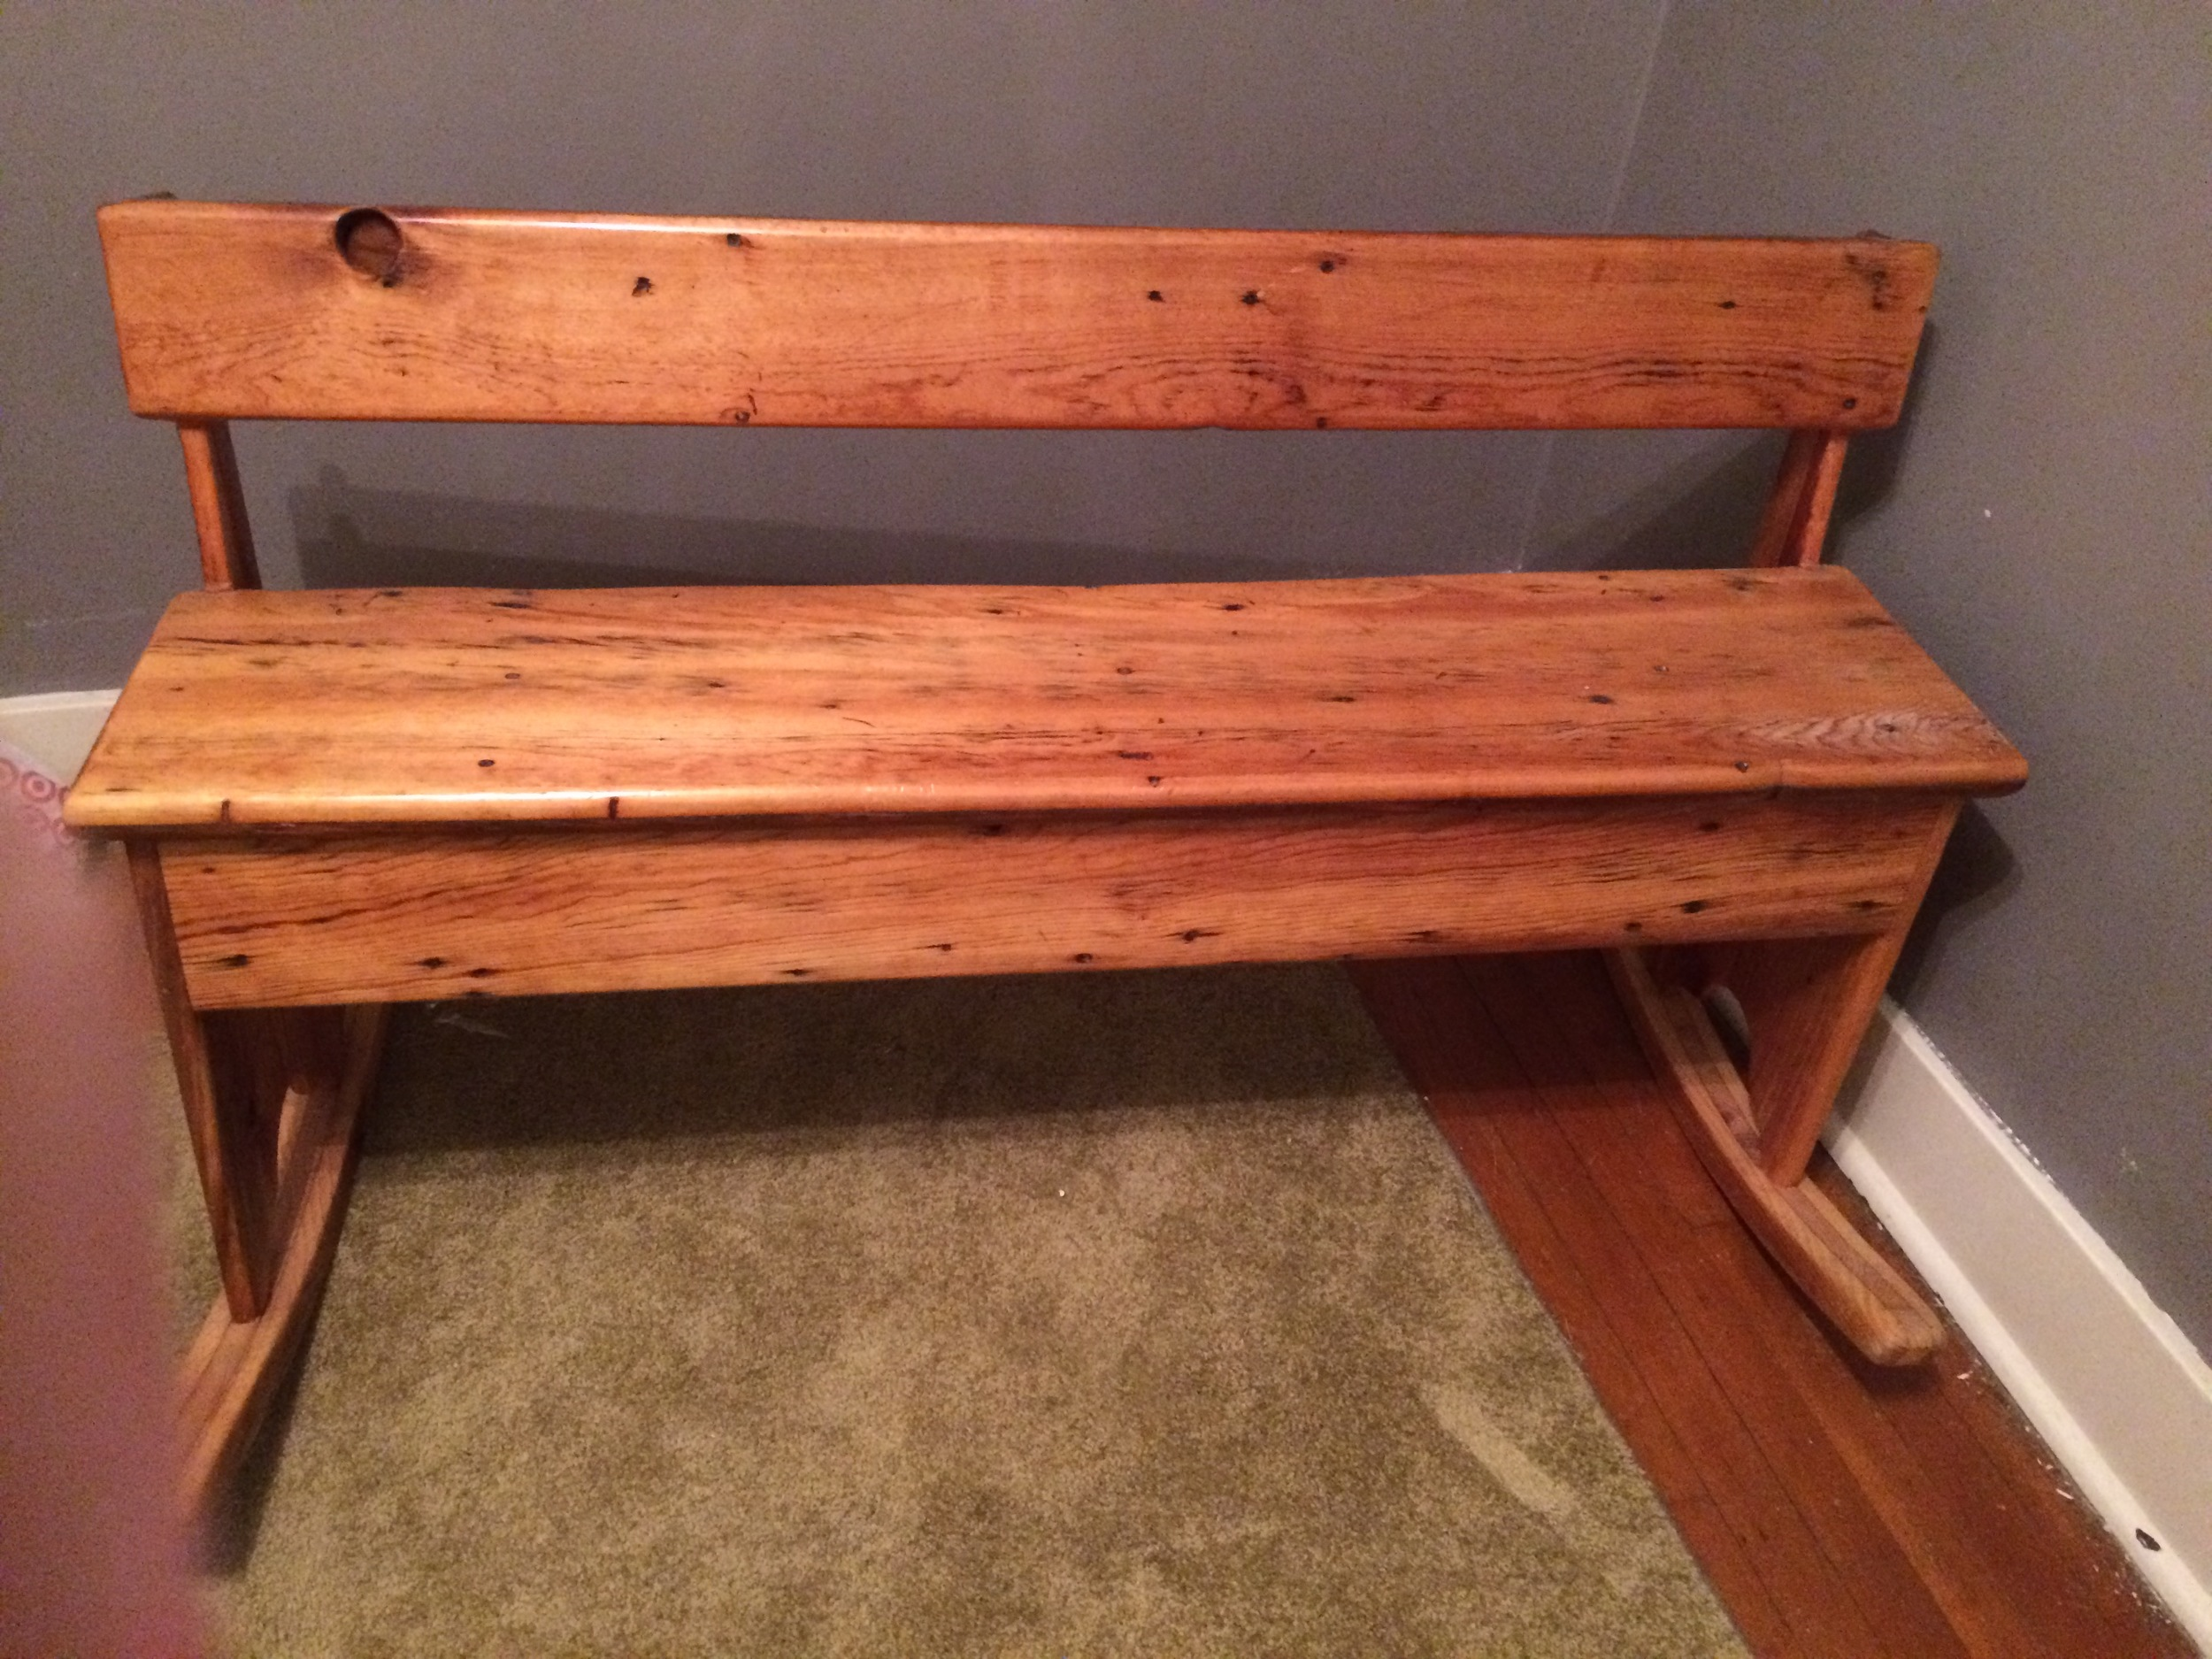 A bench I made around the same time as the table above.  It rocked for shit and, honestly, I cut the rockers off of it and sold the bench off at a yard sale before moving to Boston.